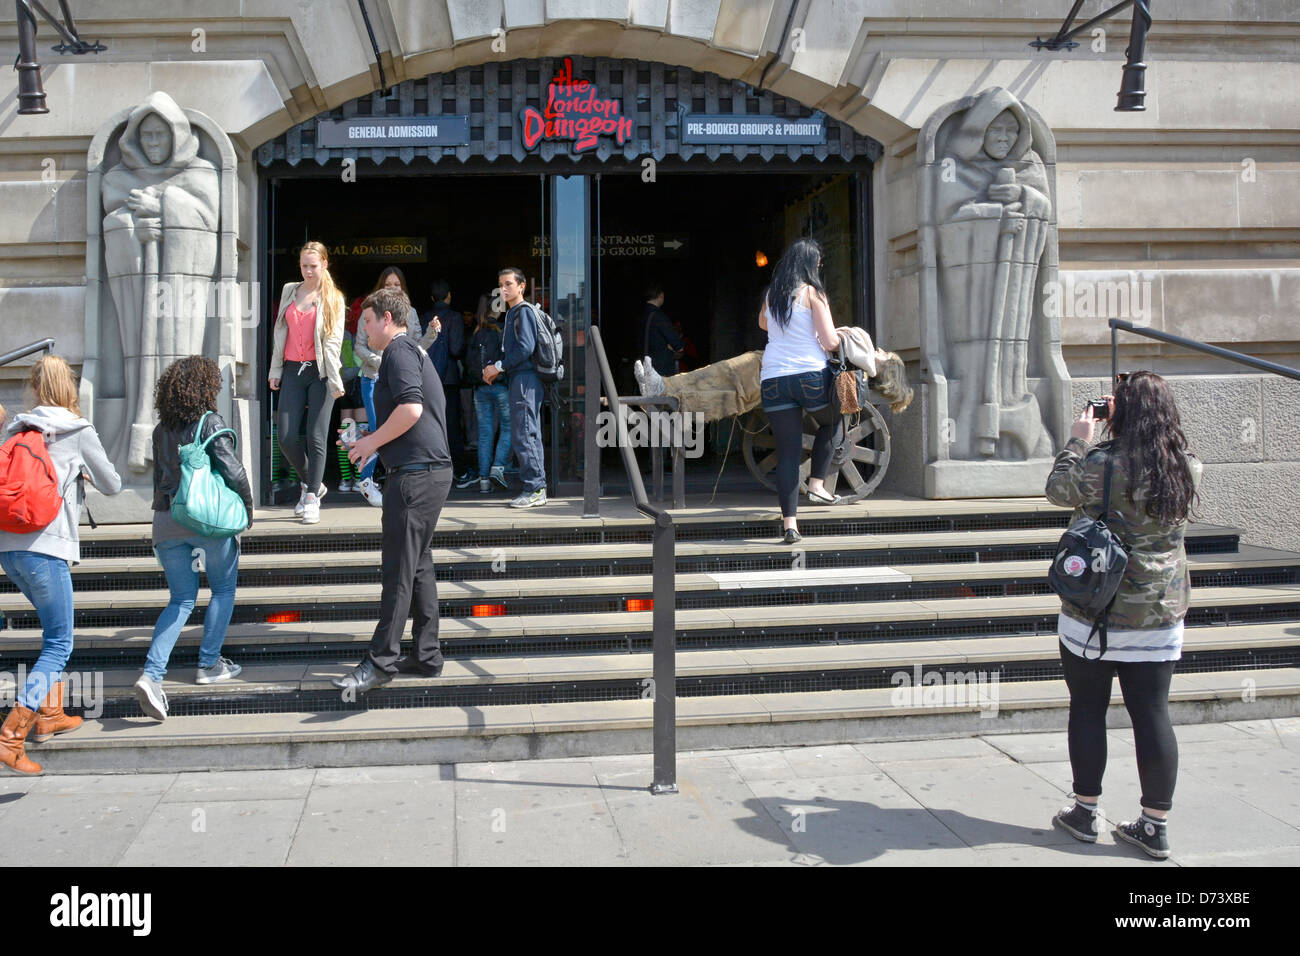 Tourists outside the New London Dungeon entrance on the South Bank run by Merlin Entertainments attractions - Stock Image